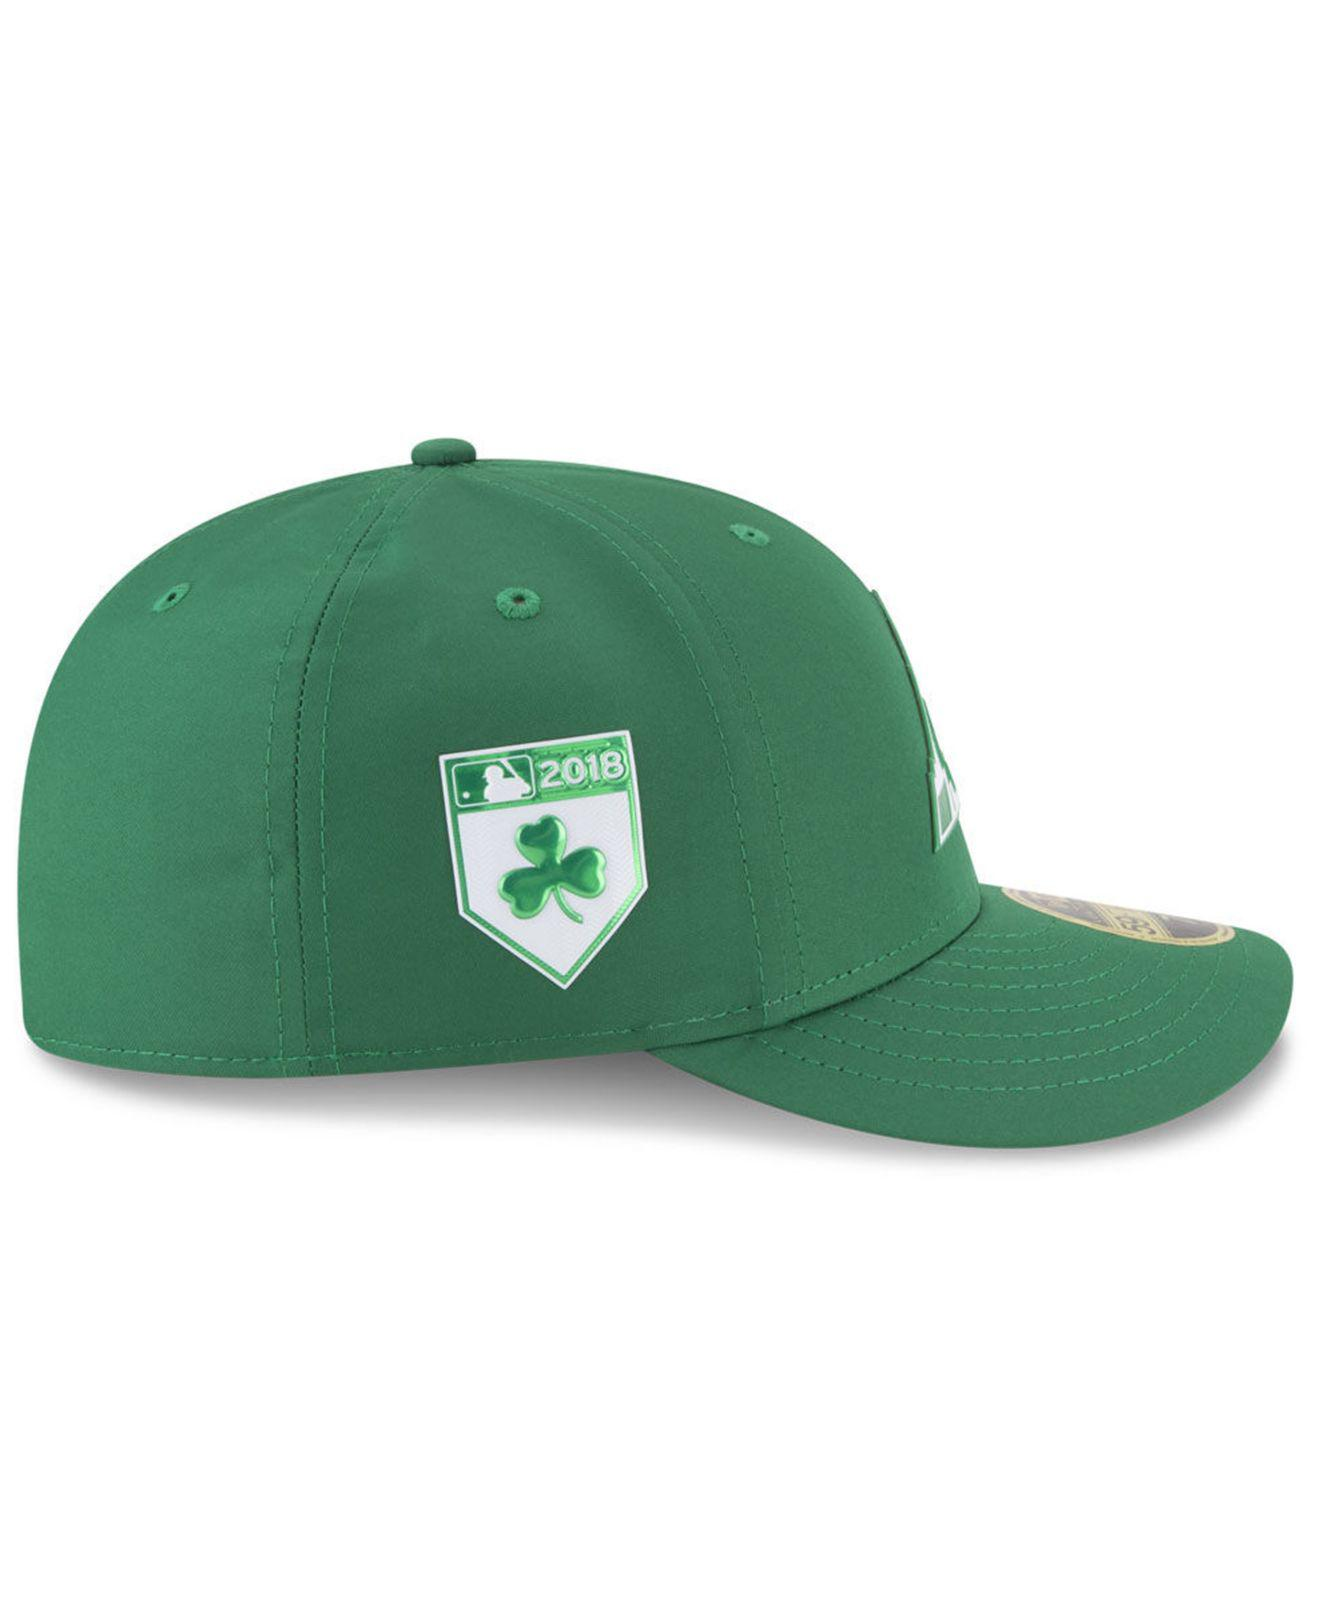 23b0e5dfeceb0 ... clearance colorado rockies st. pattys day pro light low crown 59fifty  fitted cap 046a7 d971f